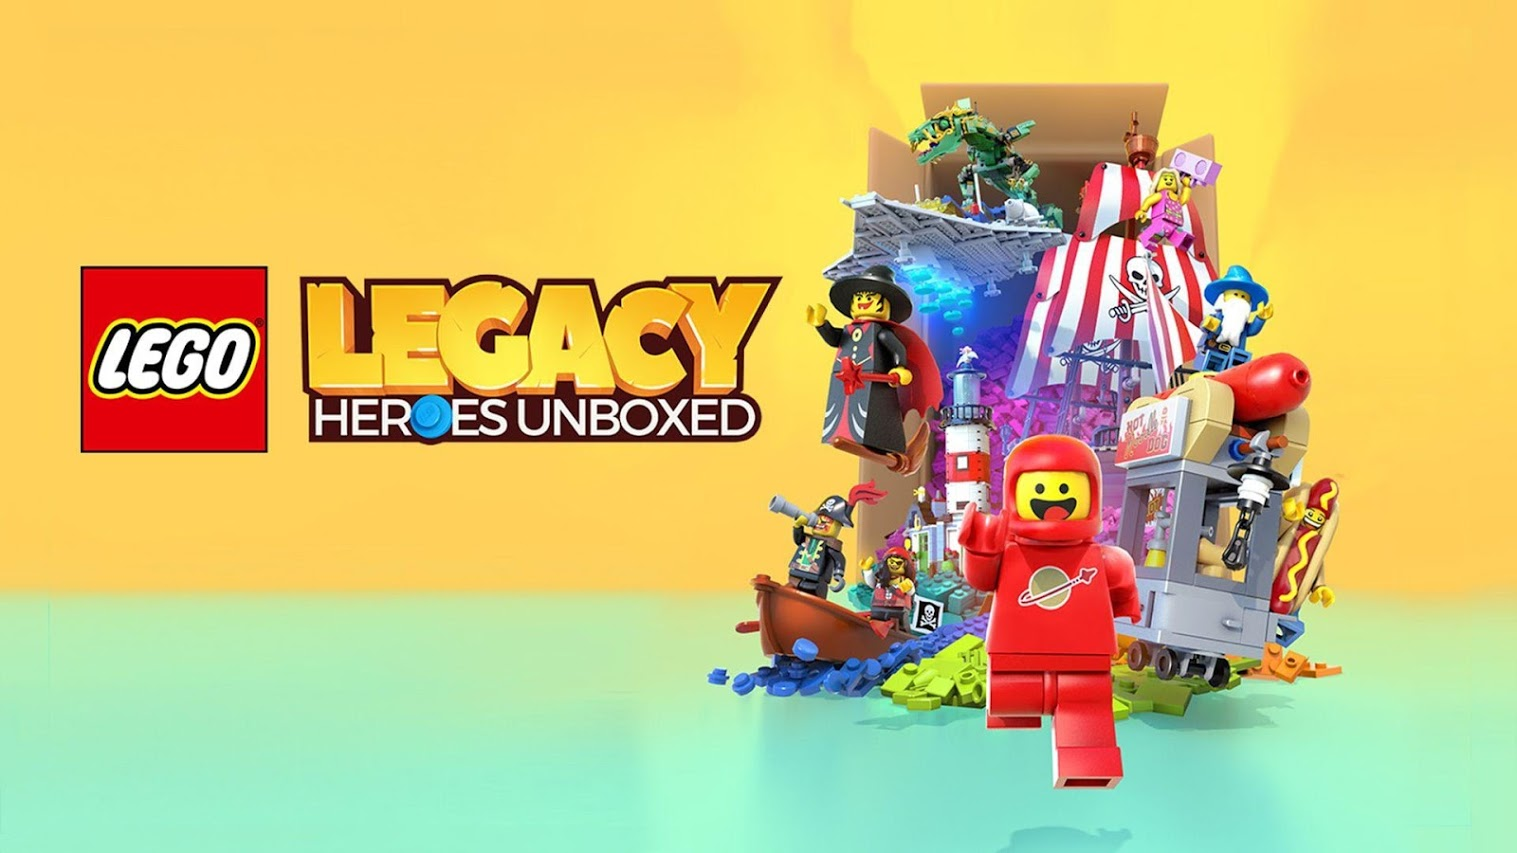 LEGO Legacy: Heroes Unboxed up for pre-reg on Play Store with F2P collect-a-thon action